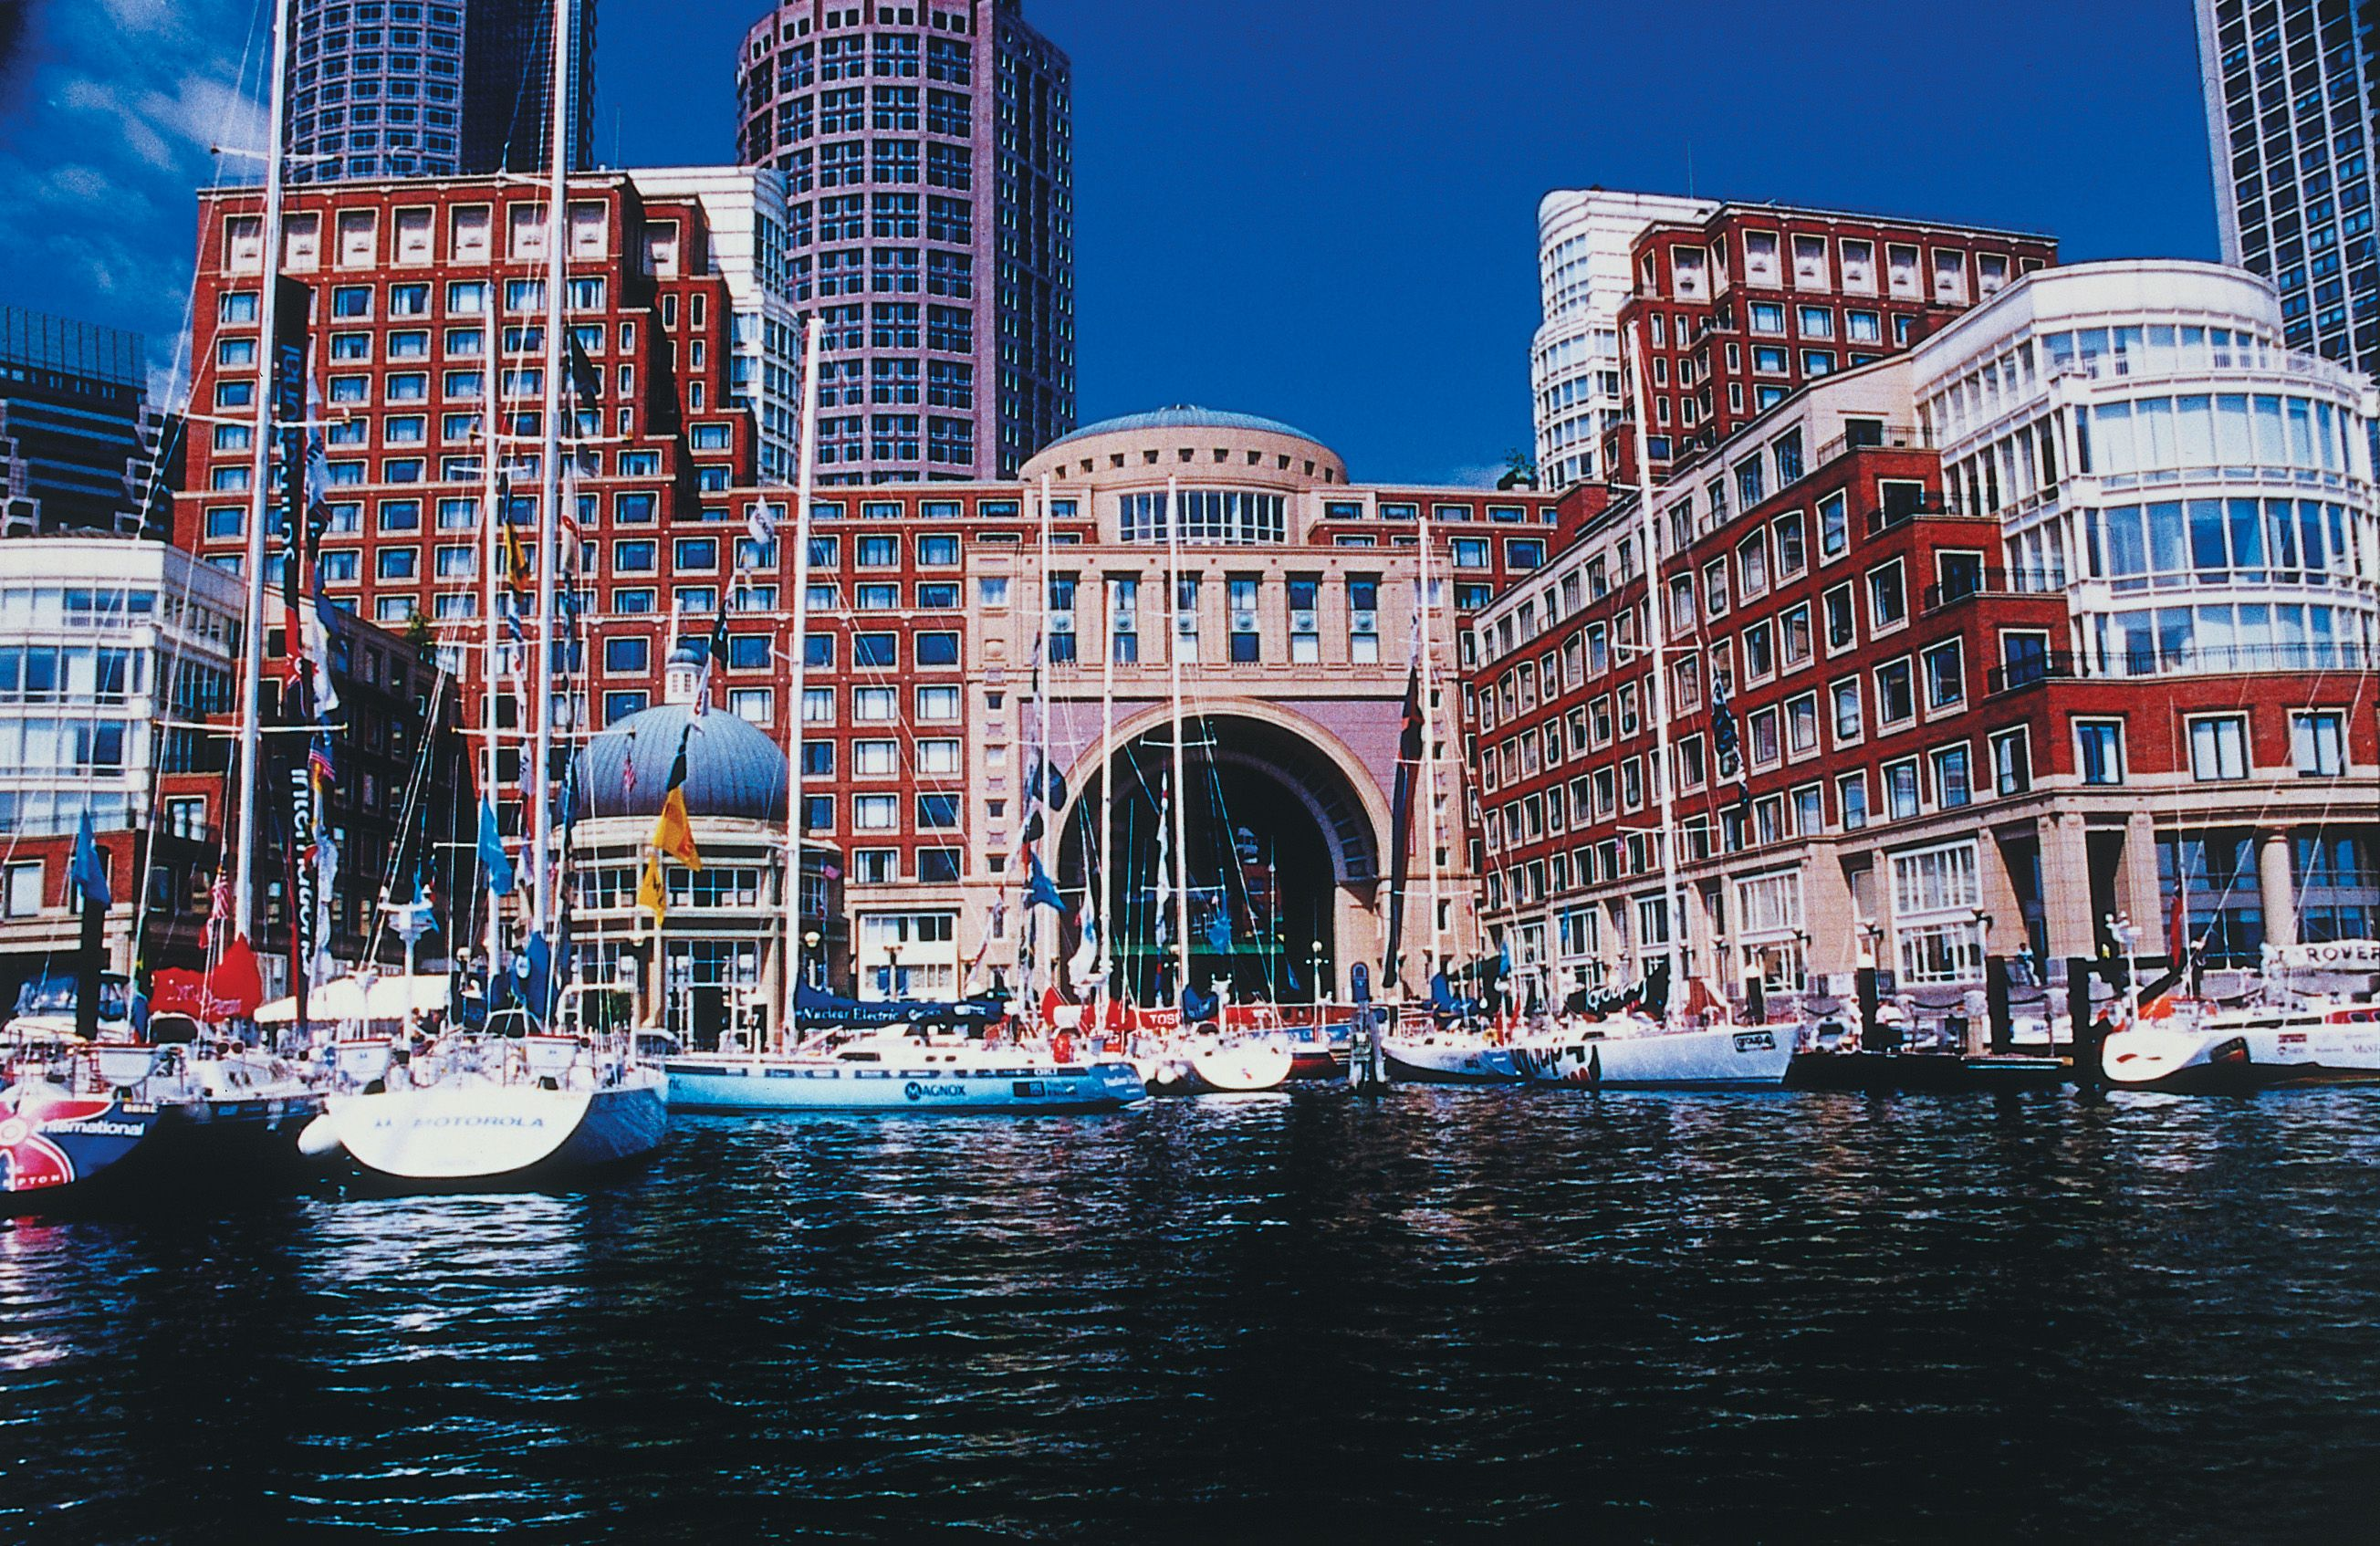 Boston Harbor Hotel Ma The Best Way To Arrive At This From Airport Is Via Water Taxi Lovely